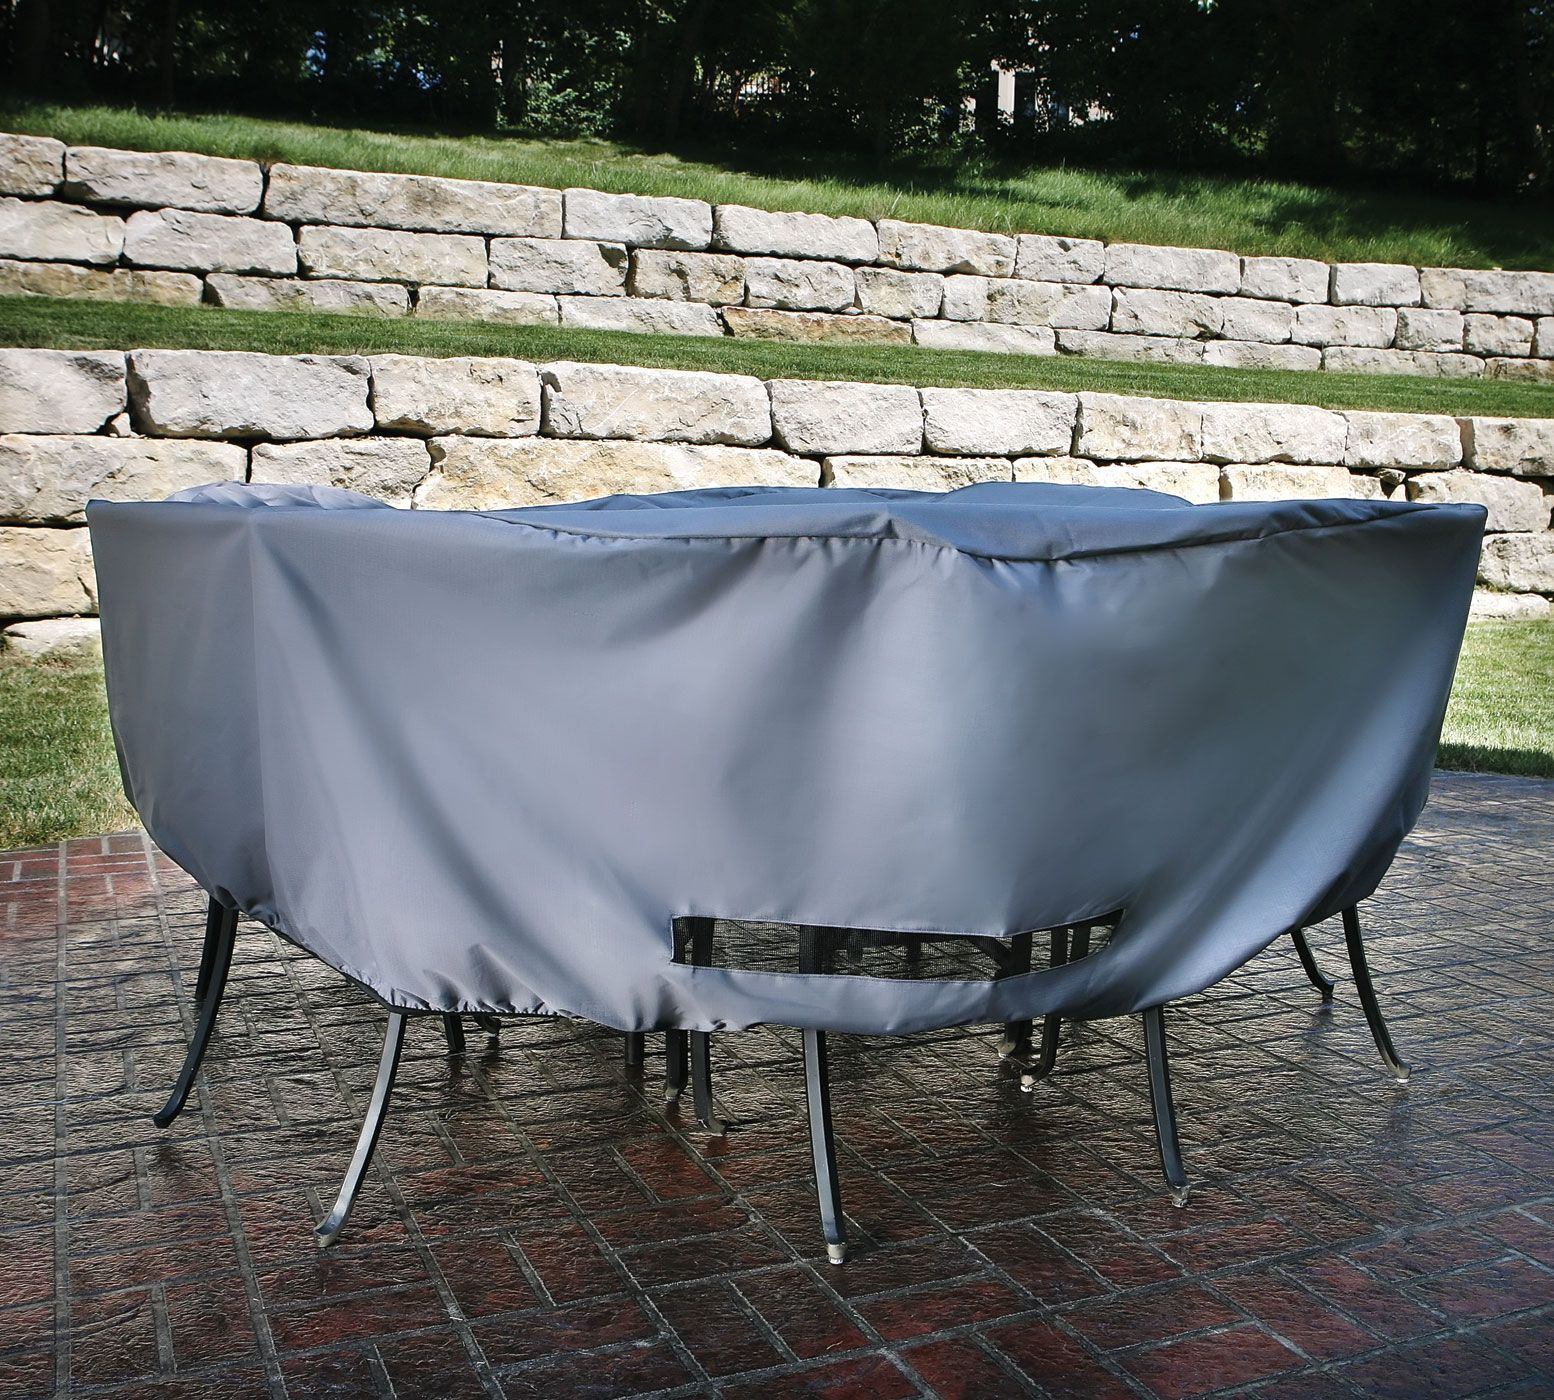 Protect your patio furniture from the outdoor elements